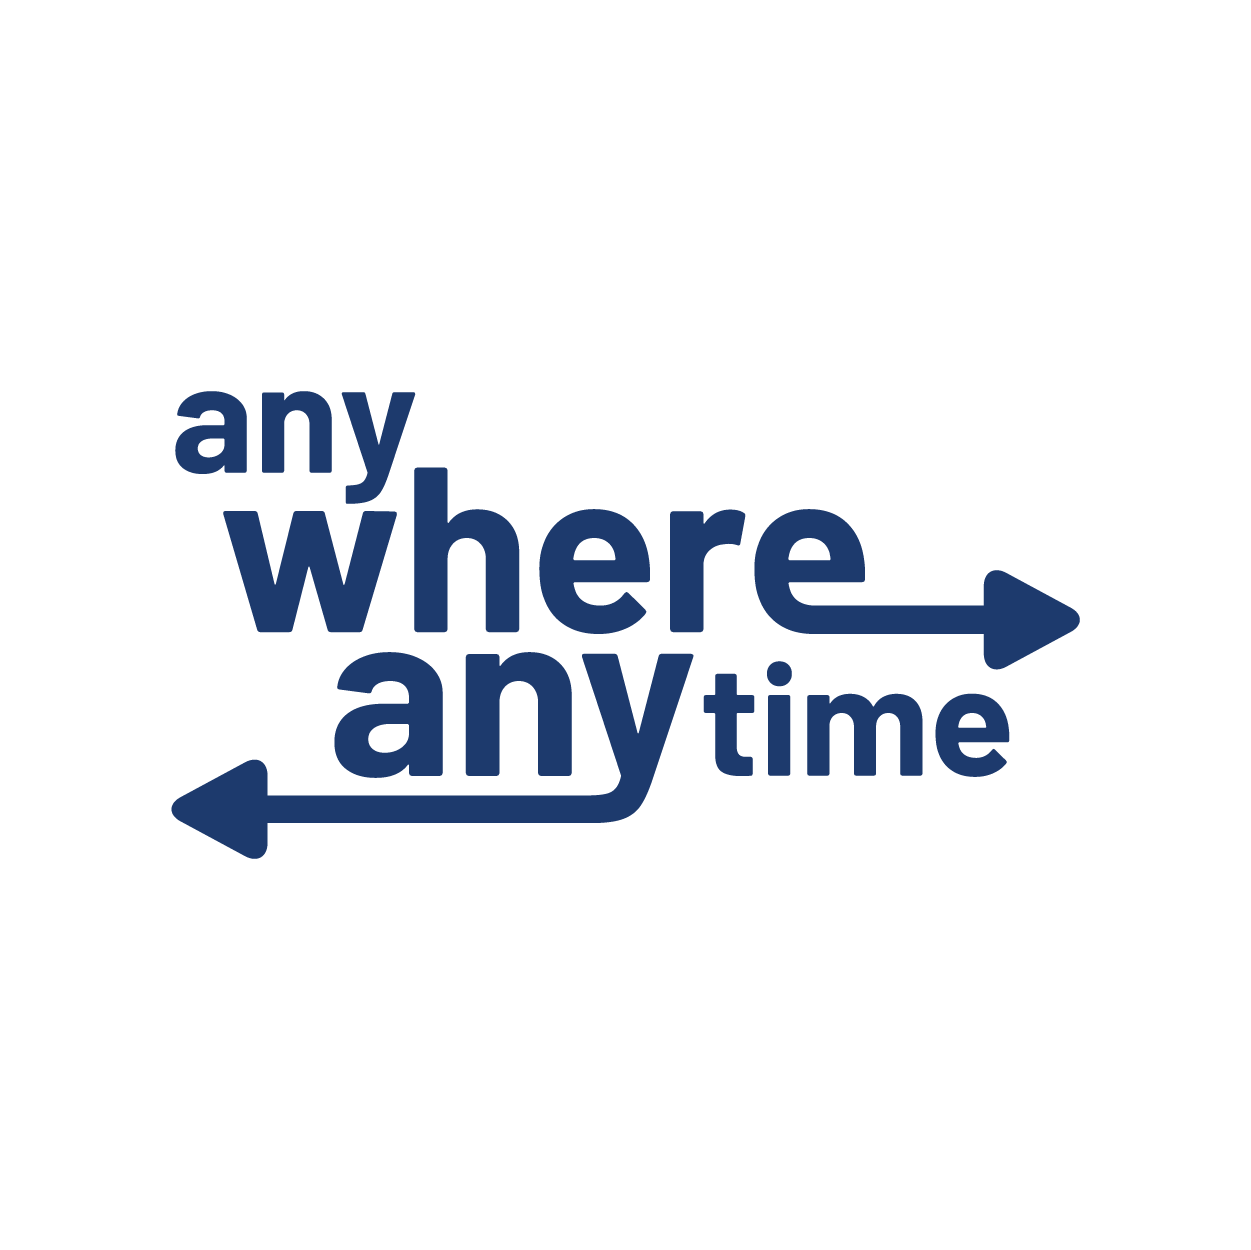 Image of the anywhere logo